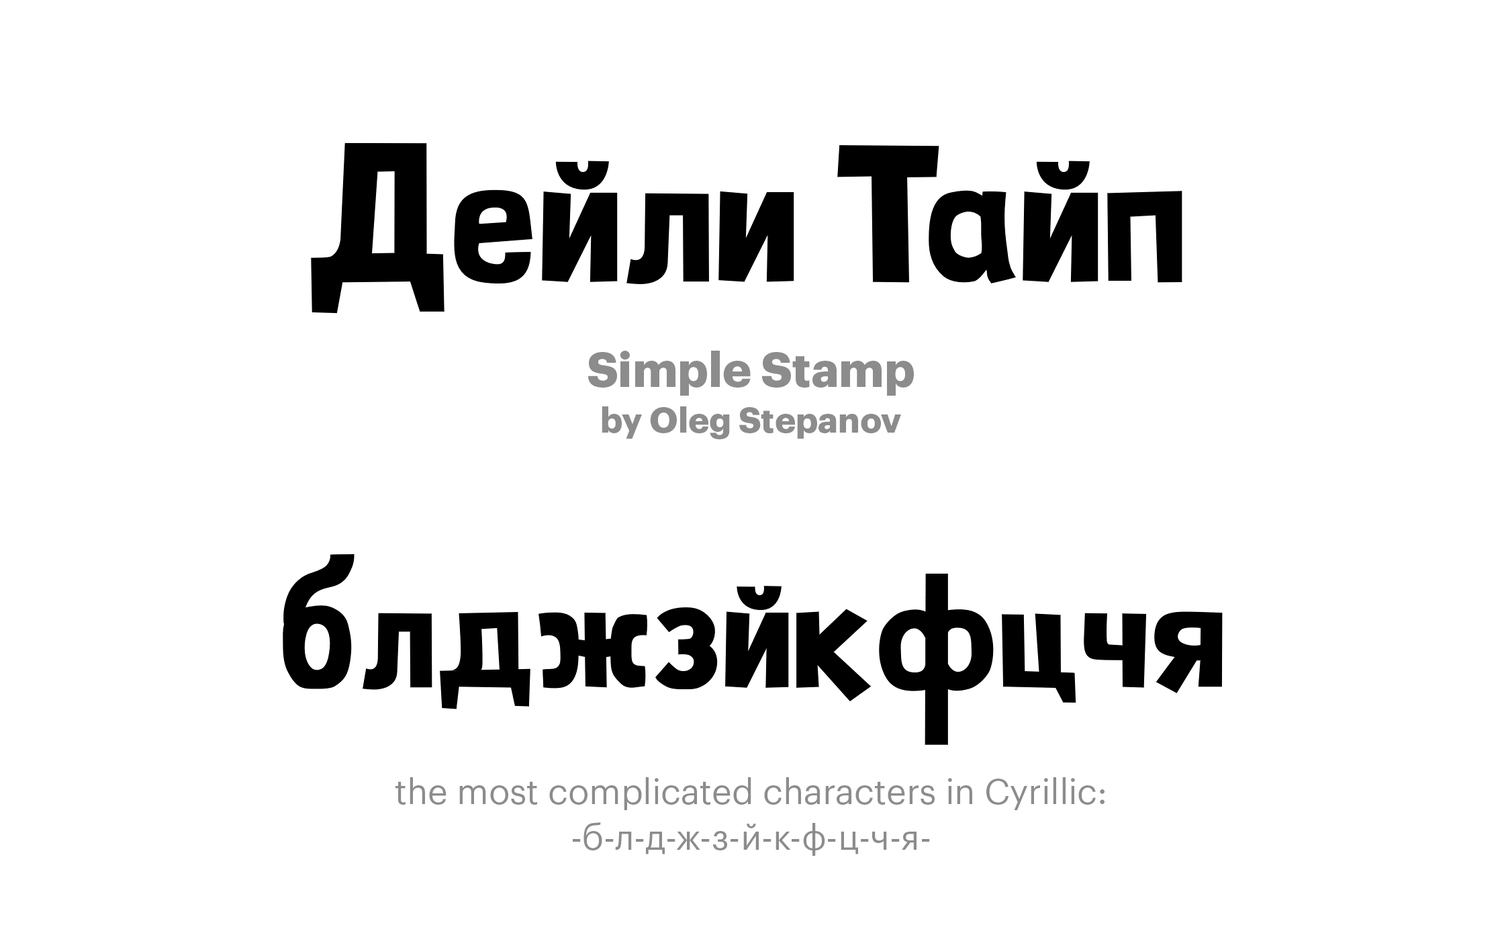 Simple-Stamp-by-Oleg-Stepanov